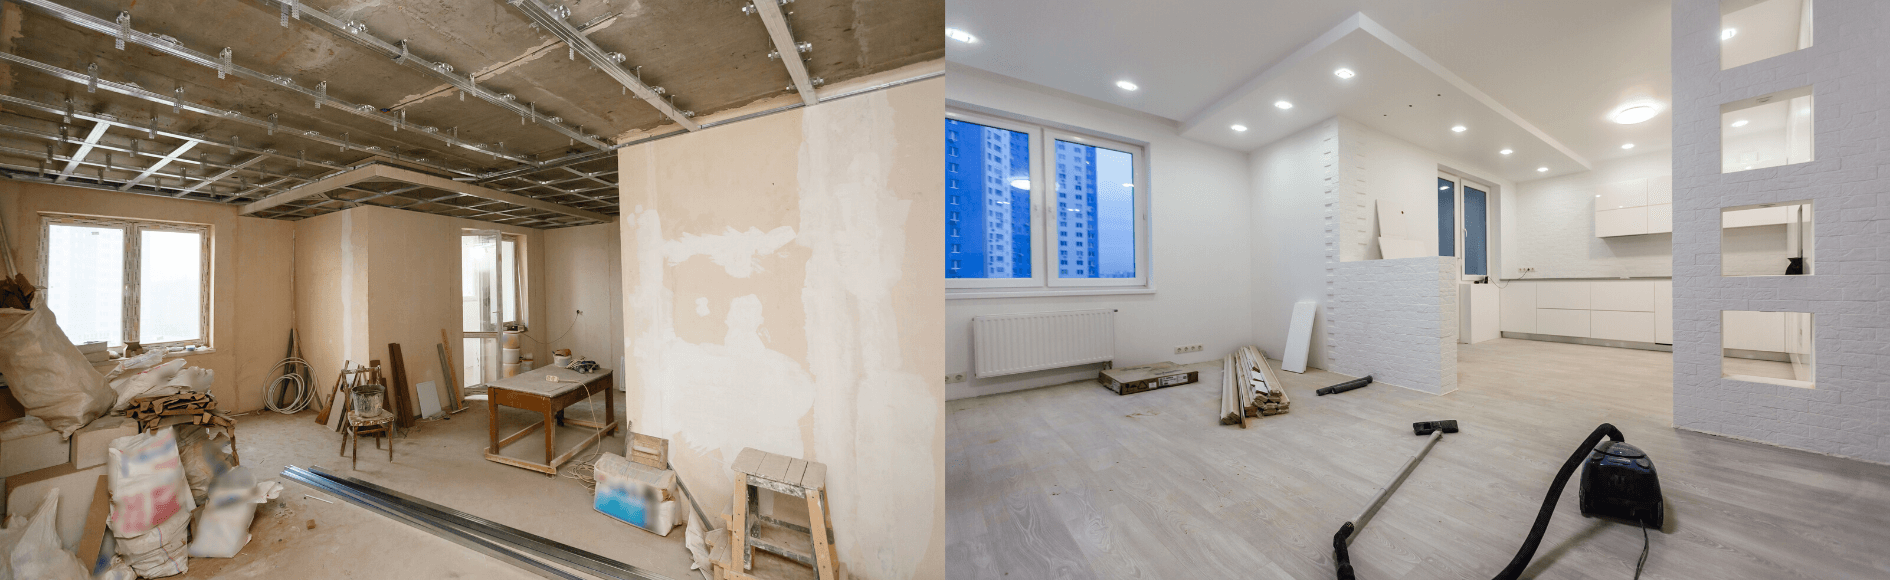 Are You Planning Home Renovations